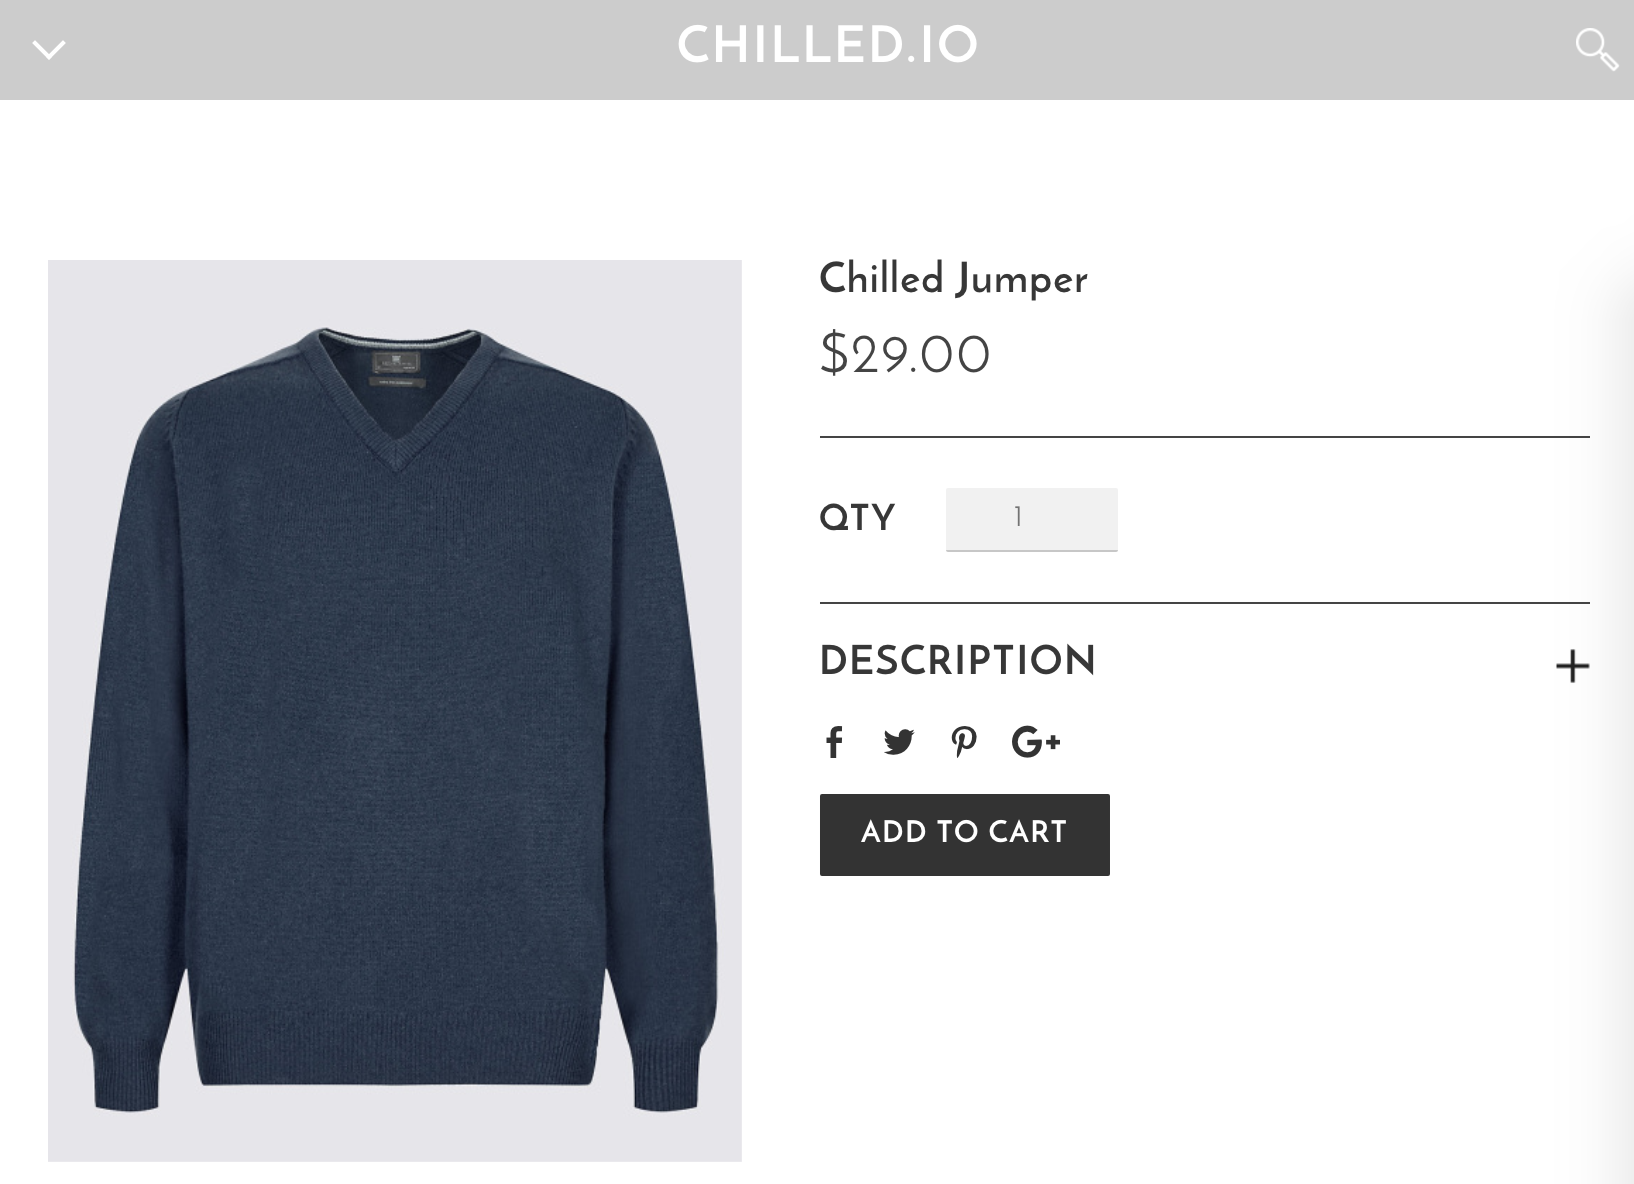 Product Live Chilled.io